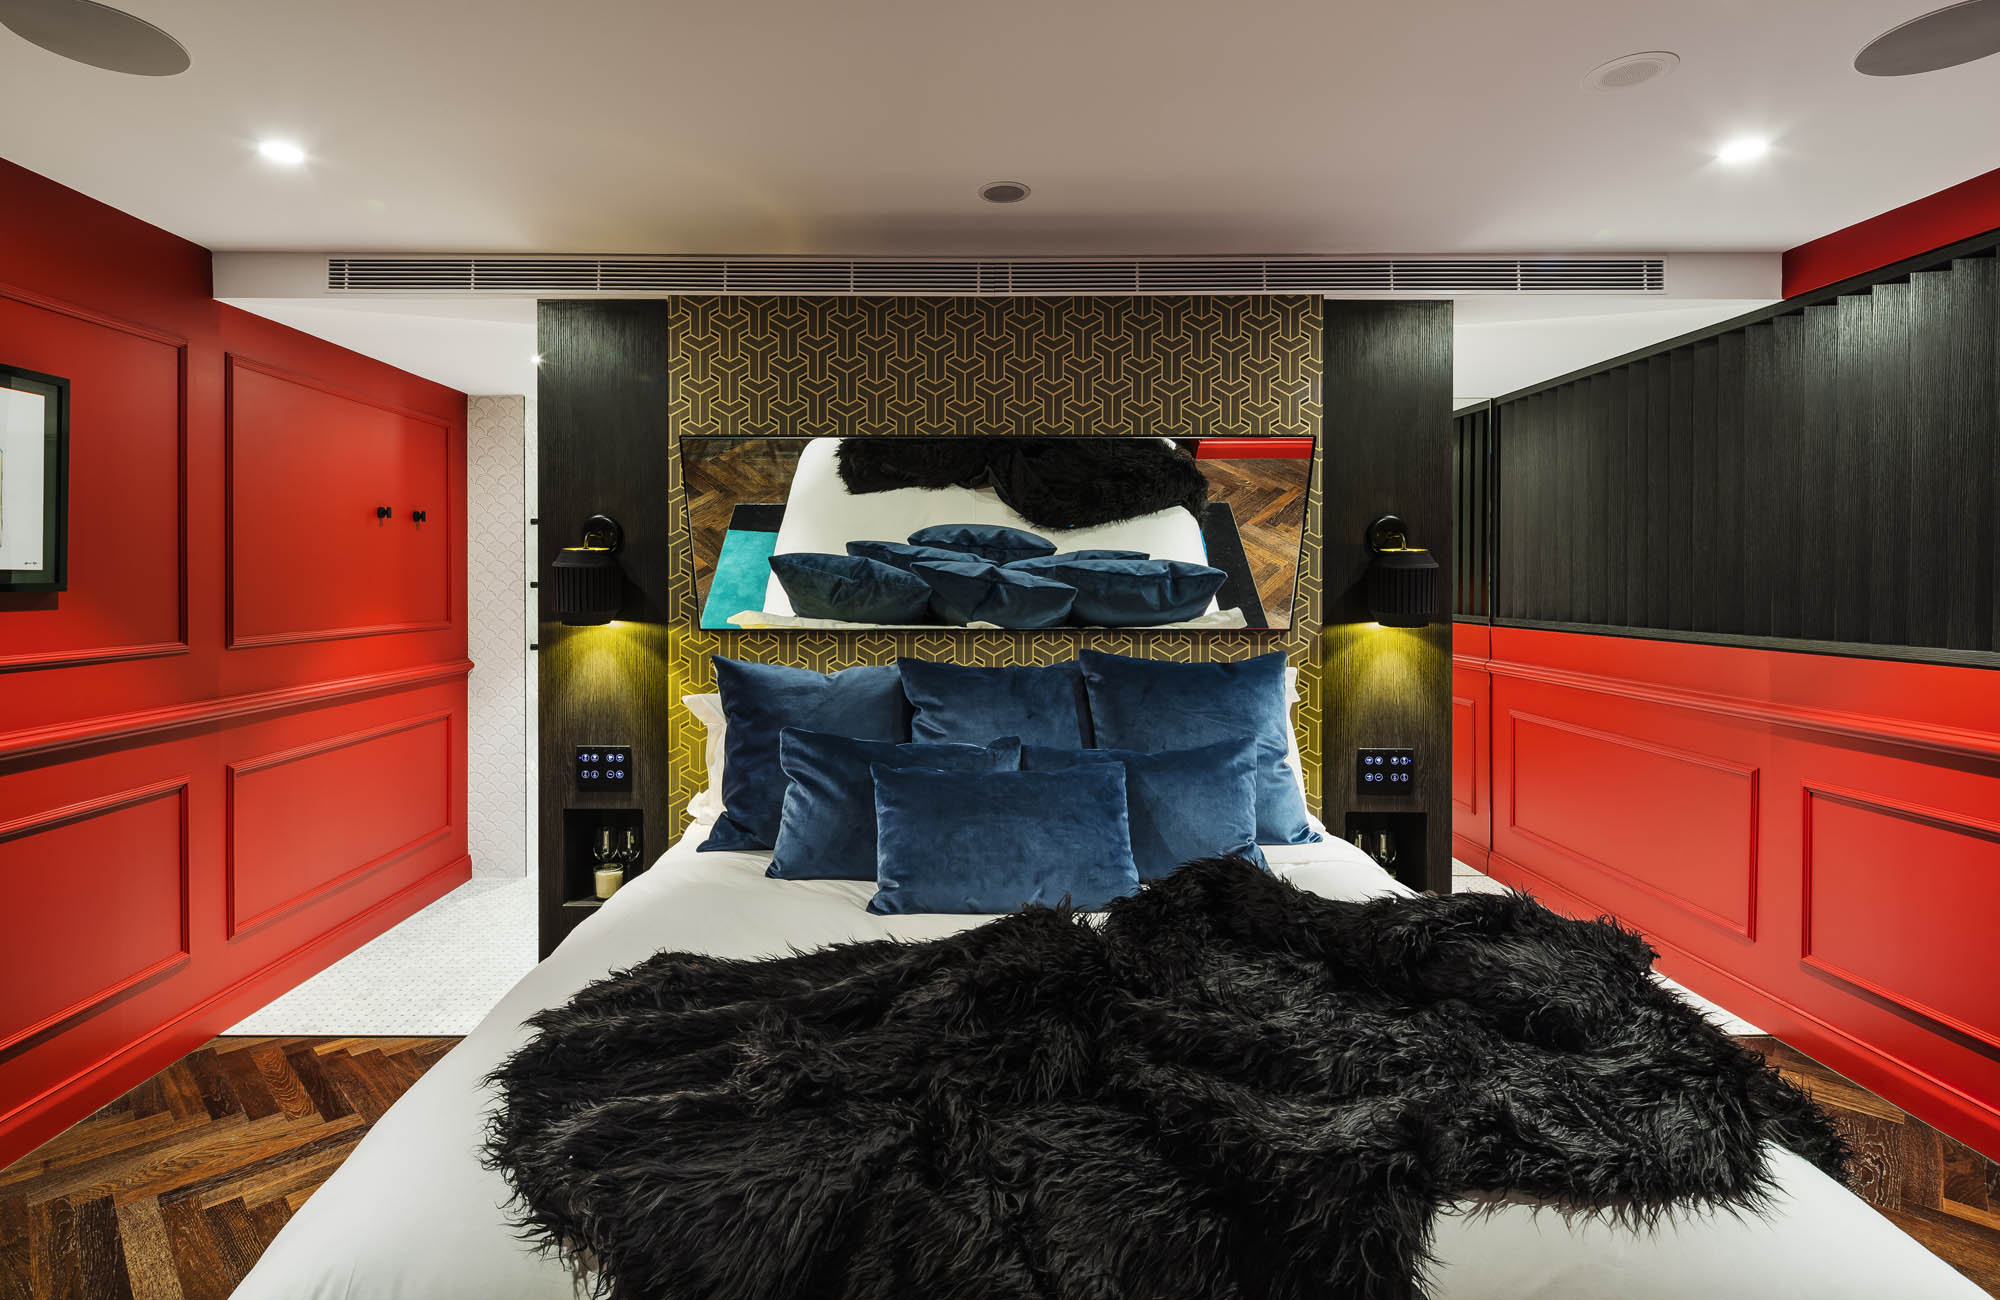 studios at the star sydney hotels design and construct nsw dark romance room red walls bed mirror black throw blanket